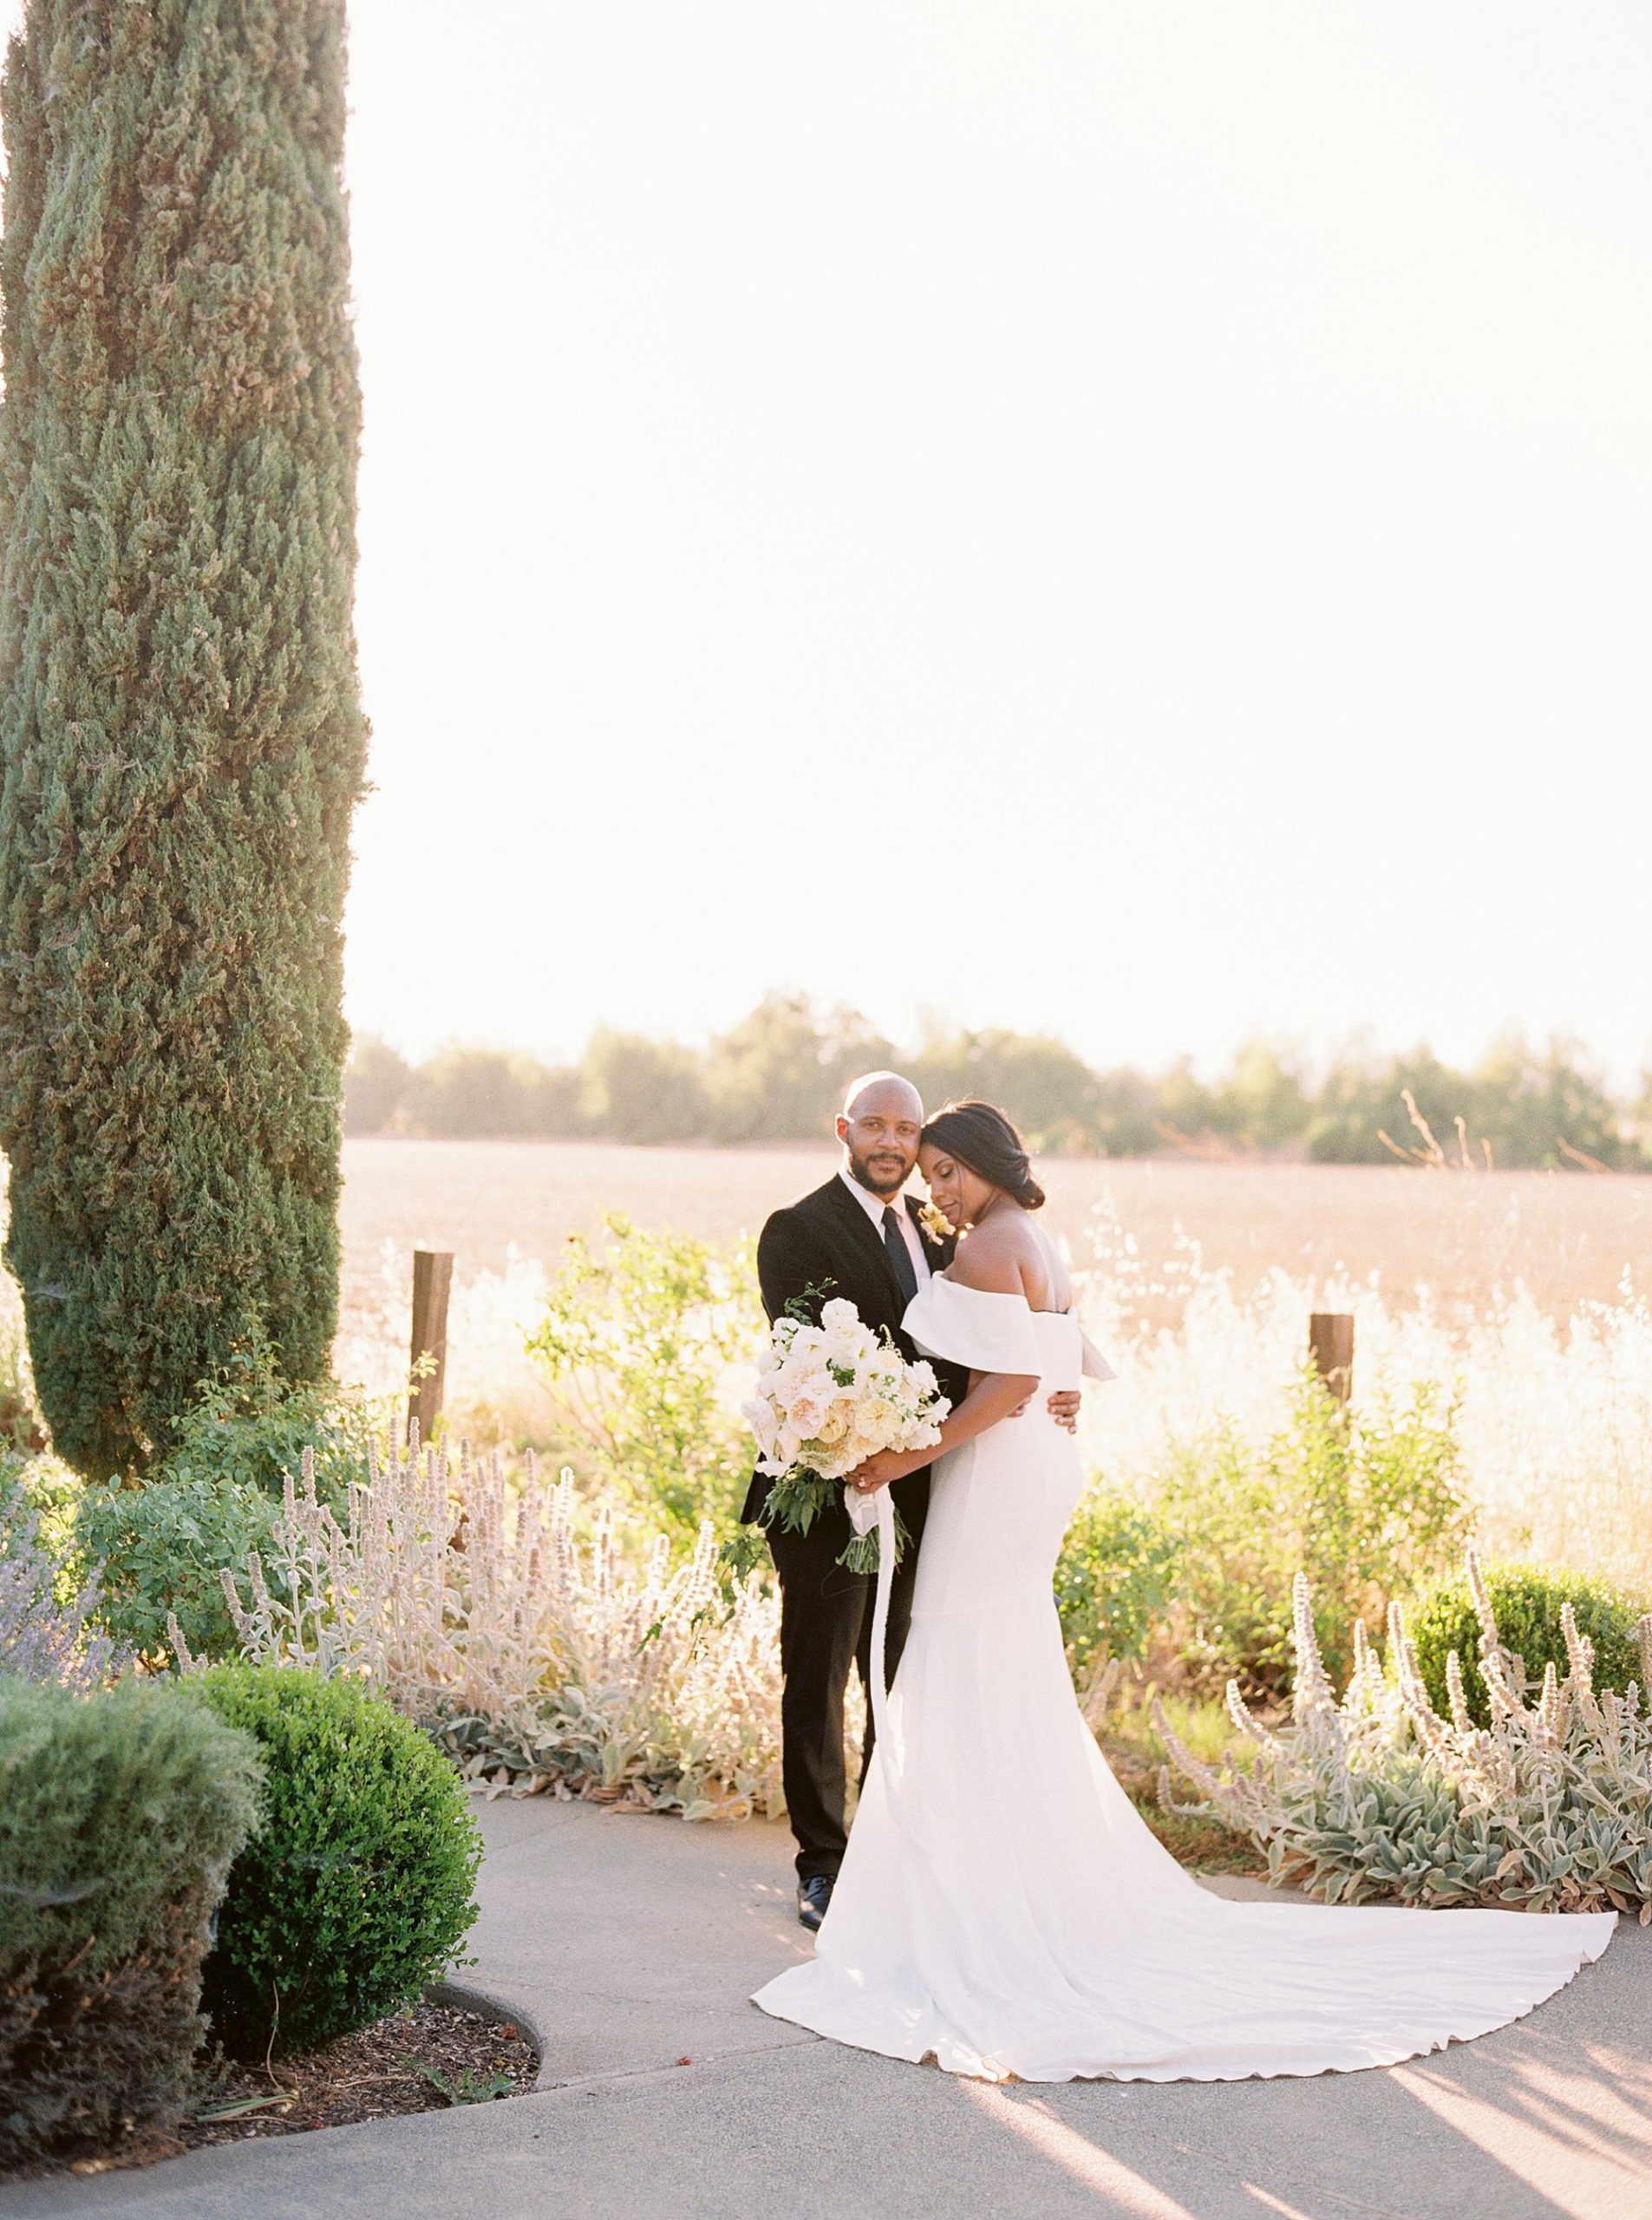 Park Winters Micro-Wedding Inspiration on Style Me Pretty - Stephanie Teague Events - Ashley Baumgartner - Park Winters Wedding - Black Tie Wedding - Micro-Wedding Sacramento Photographer_0008.jpg